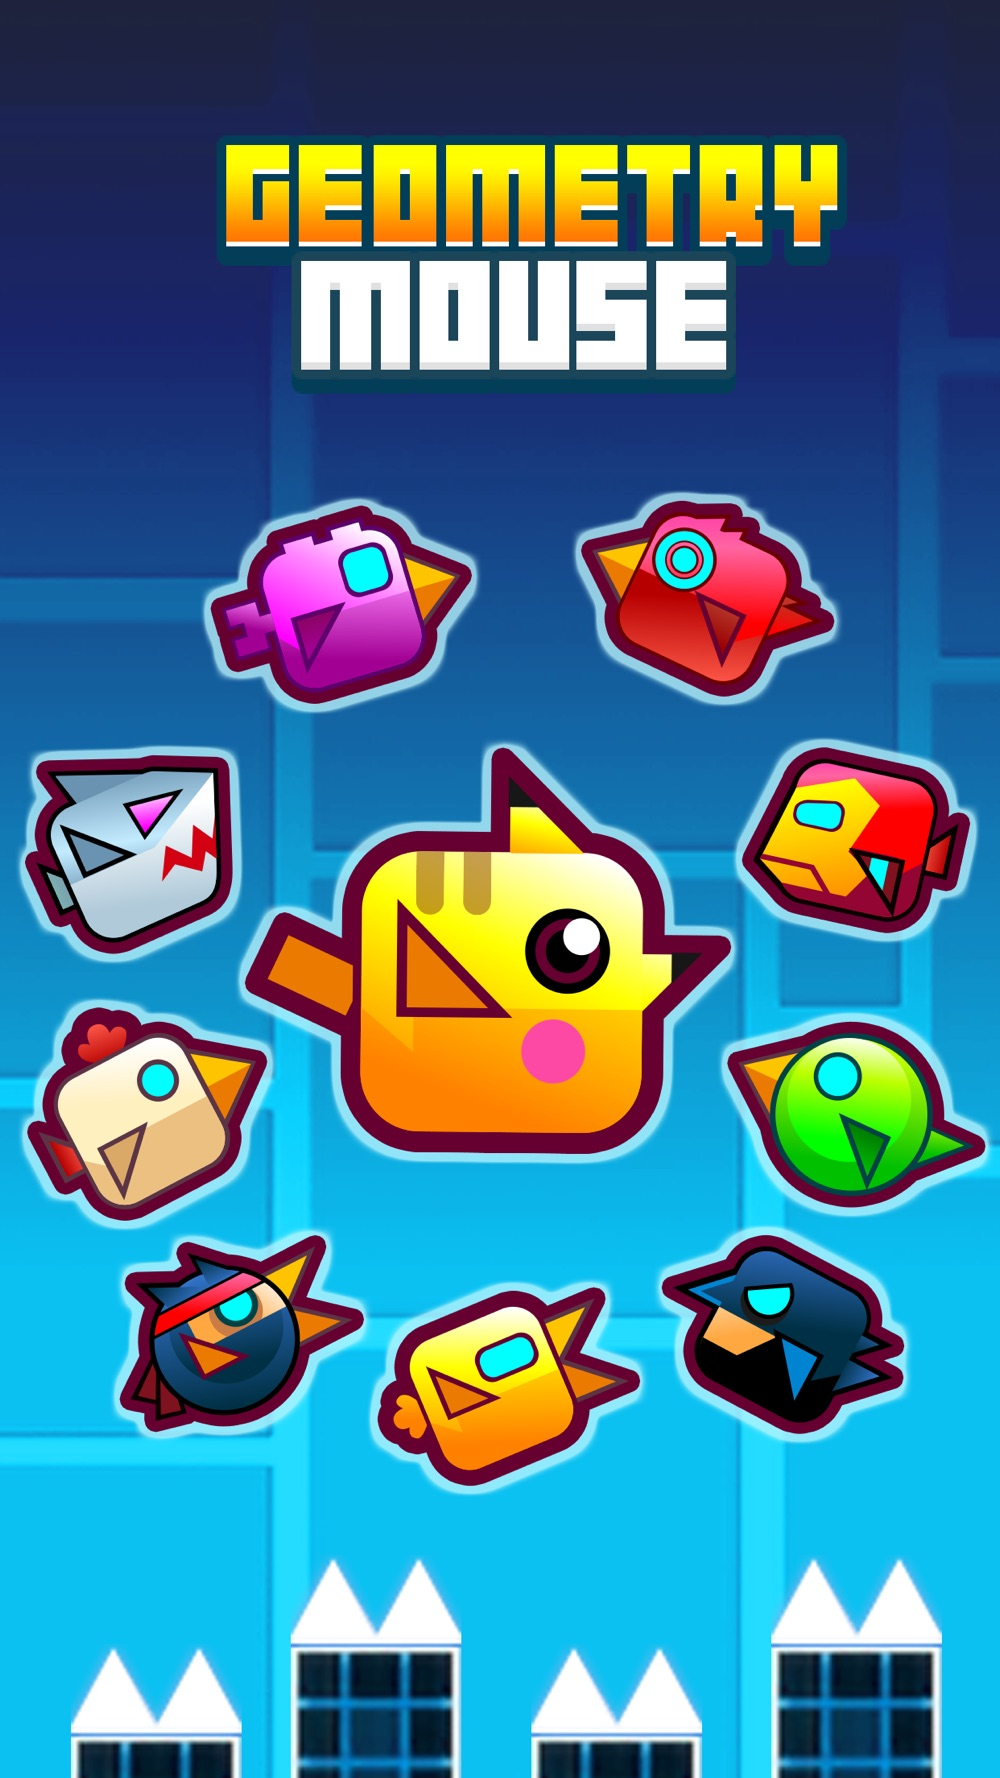 Geometry Pocket Mouse – Electric Pet Go Avoid Color Stack cheat codes